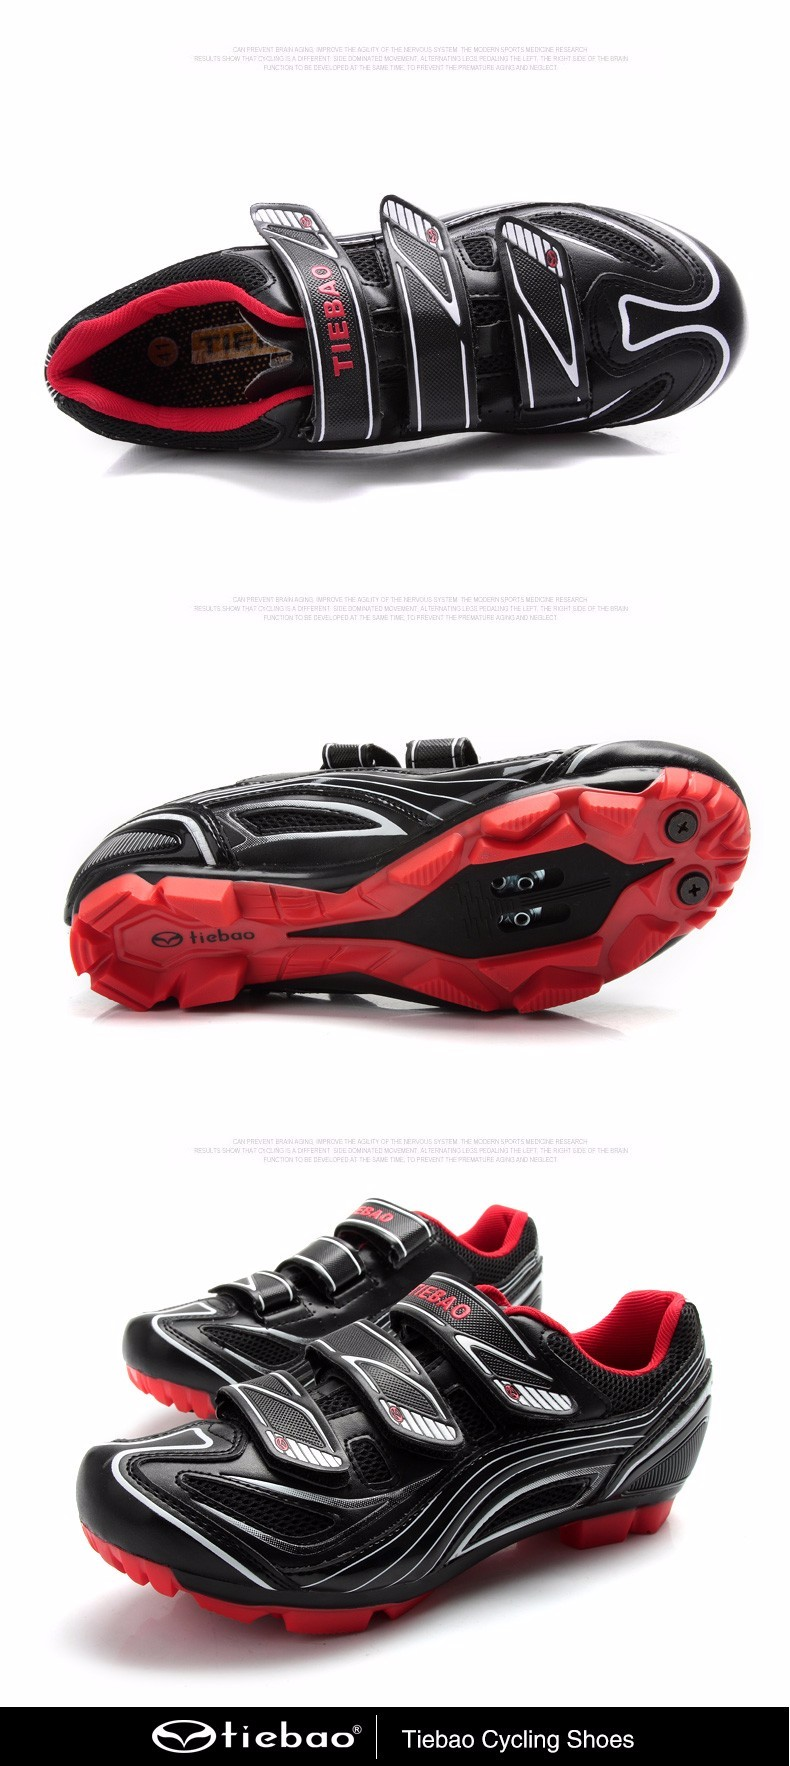 Tiebao Men/Women Outdoor Athletic Racing Road Cycling shoes. Autolock/Selflock bike shoes. SPD/SL/LOOK-KEO CLEATED BICYCLE SHOES